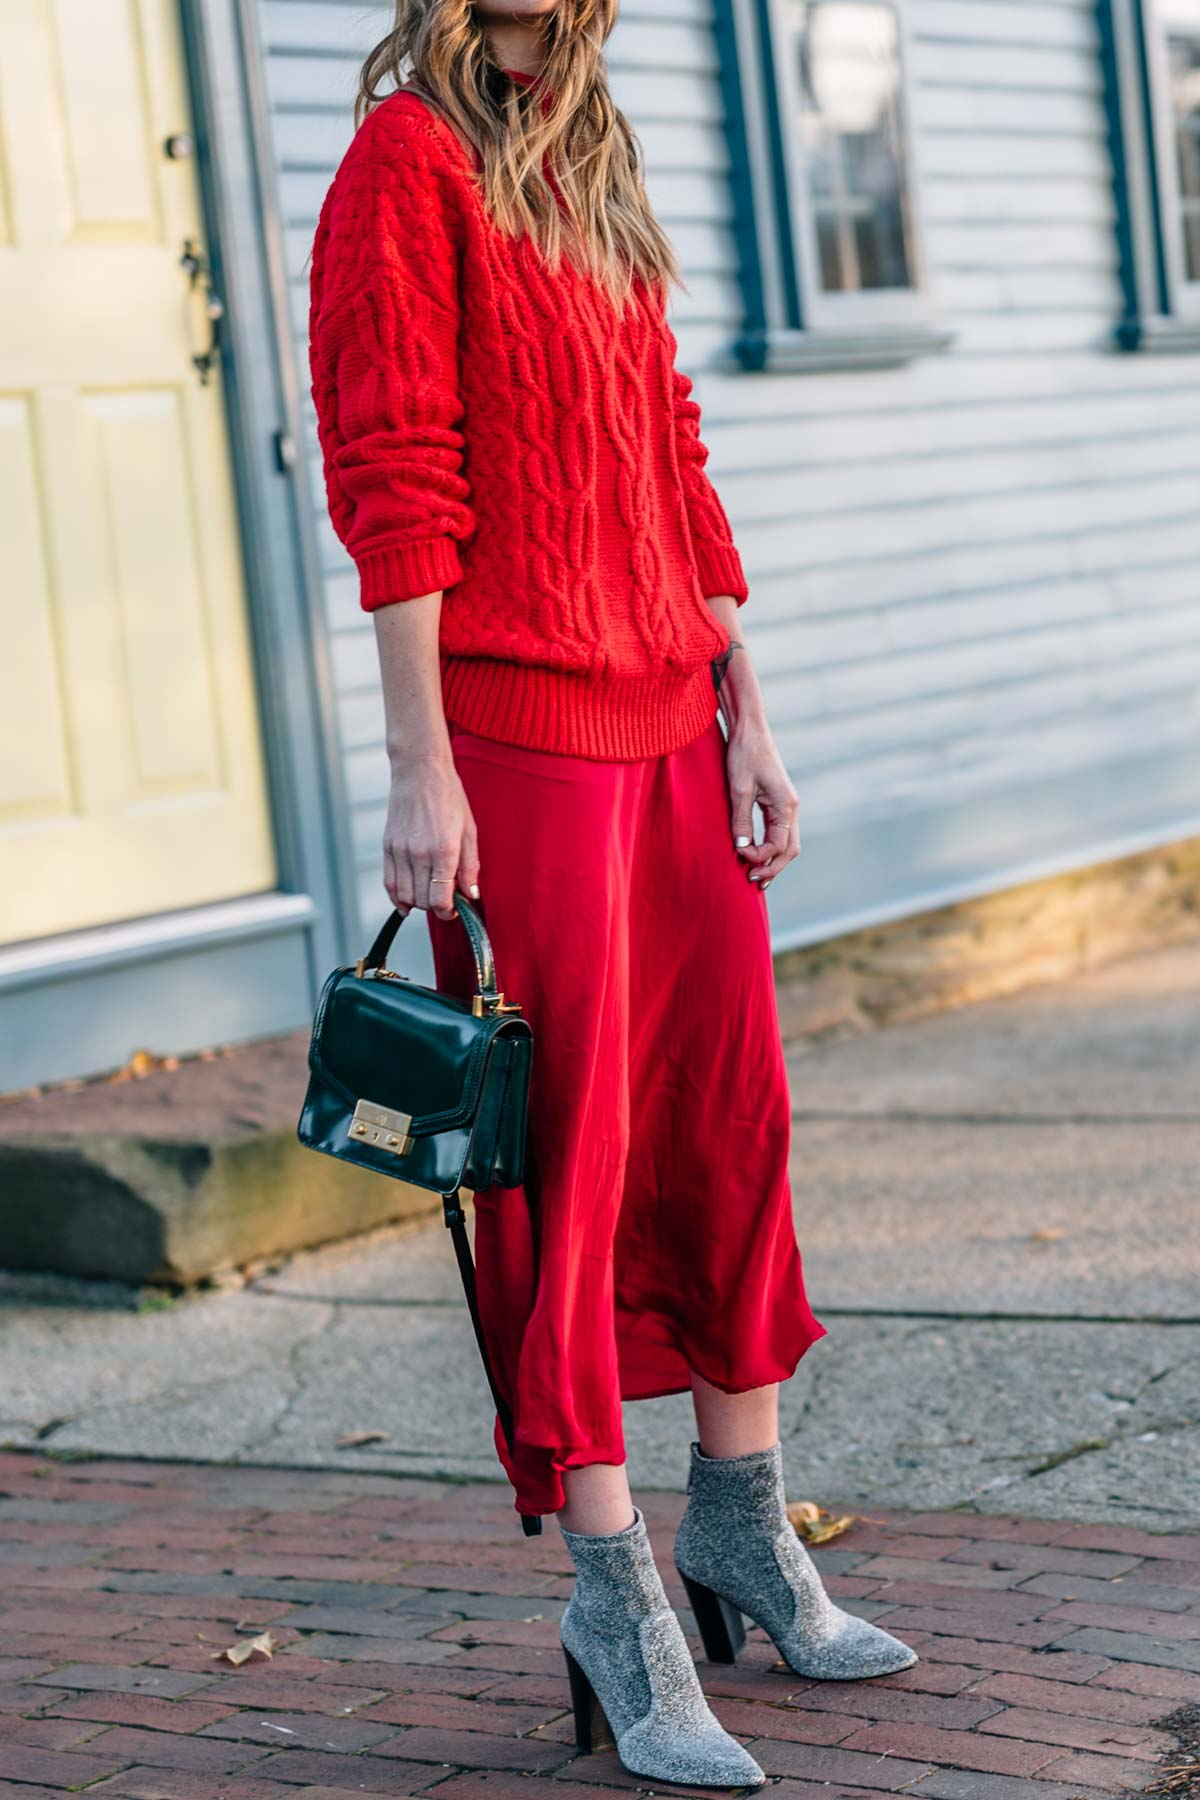 Jess Ann Kirby wears a red on red outfit with dolce vita lean stretch booties for the holidays